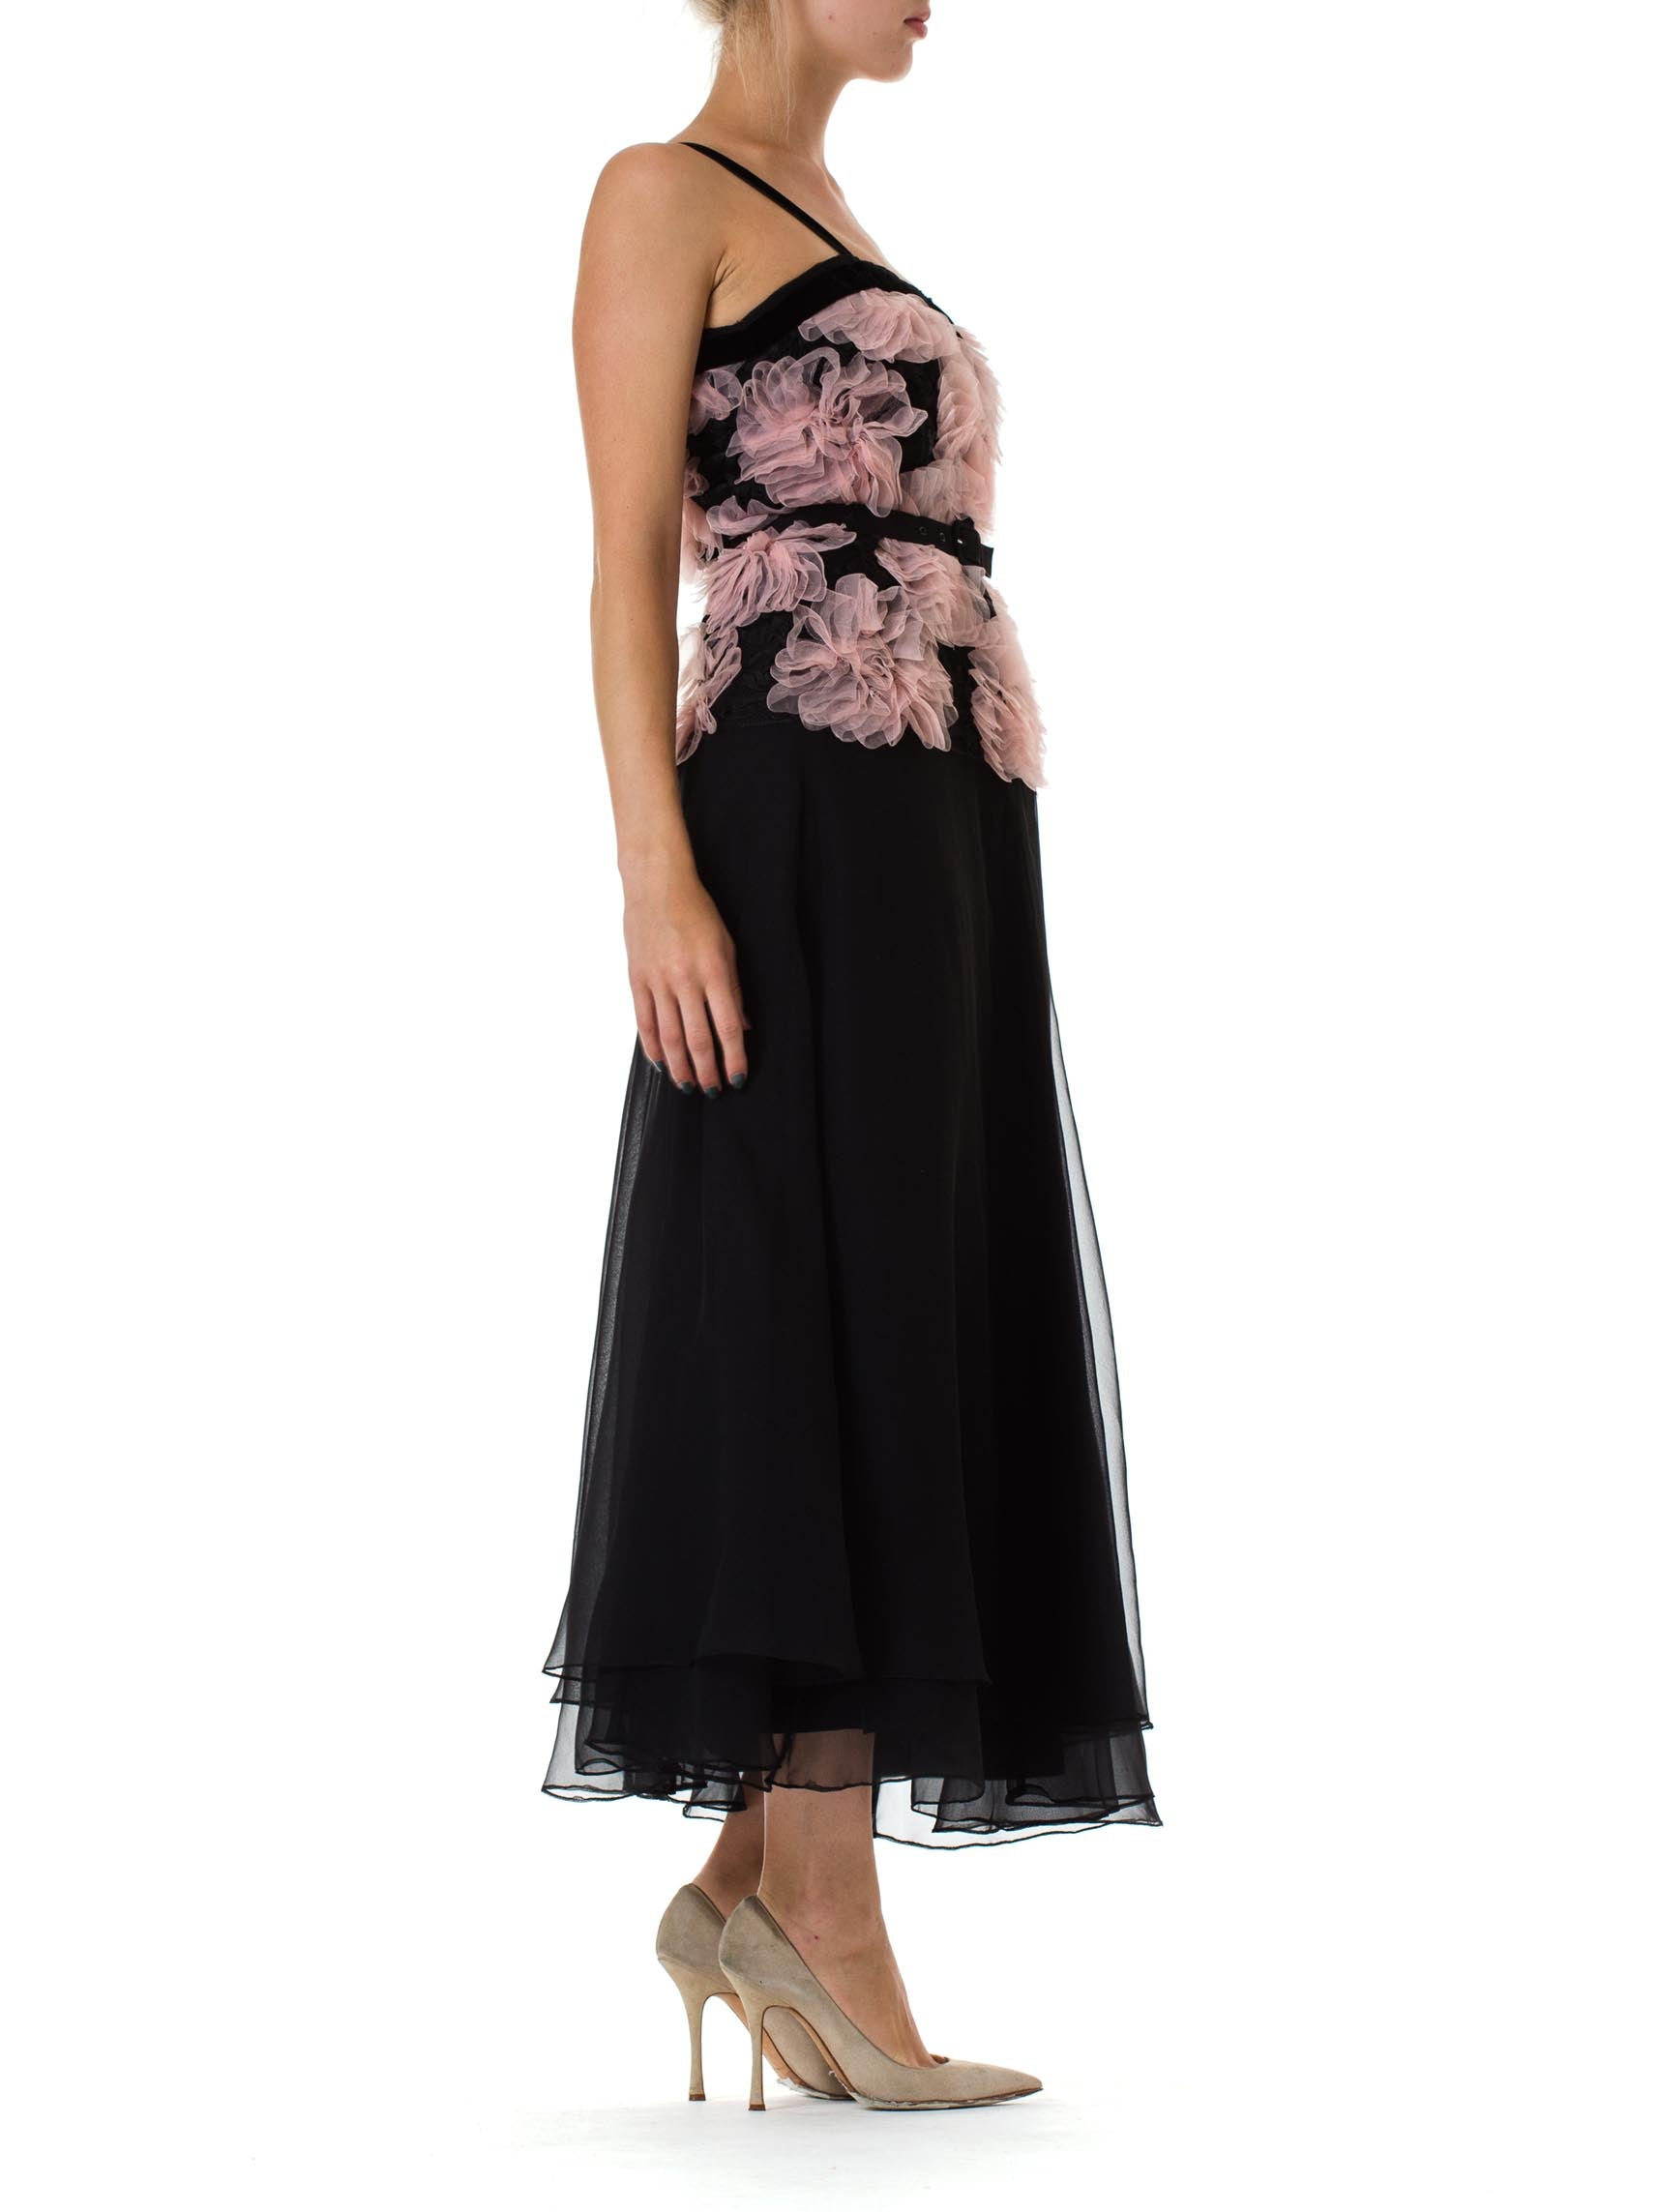 Morphew Collection Black & Pink Chiffon Chanel Inspired Gown Made With 1980S Ribbon Lace